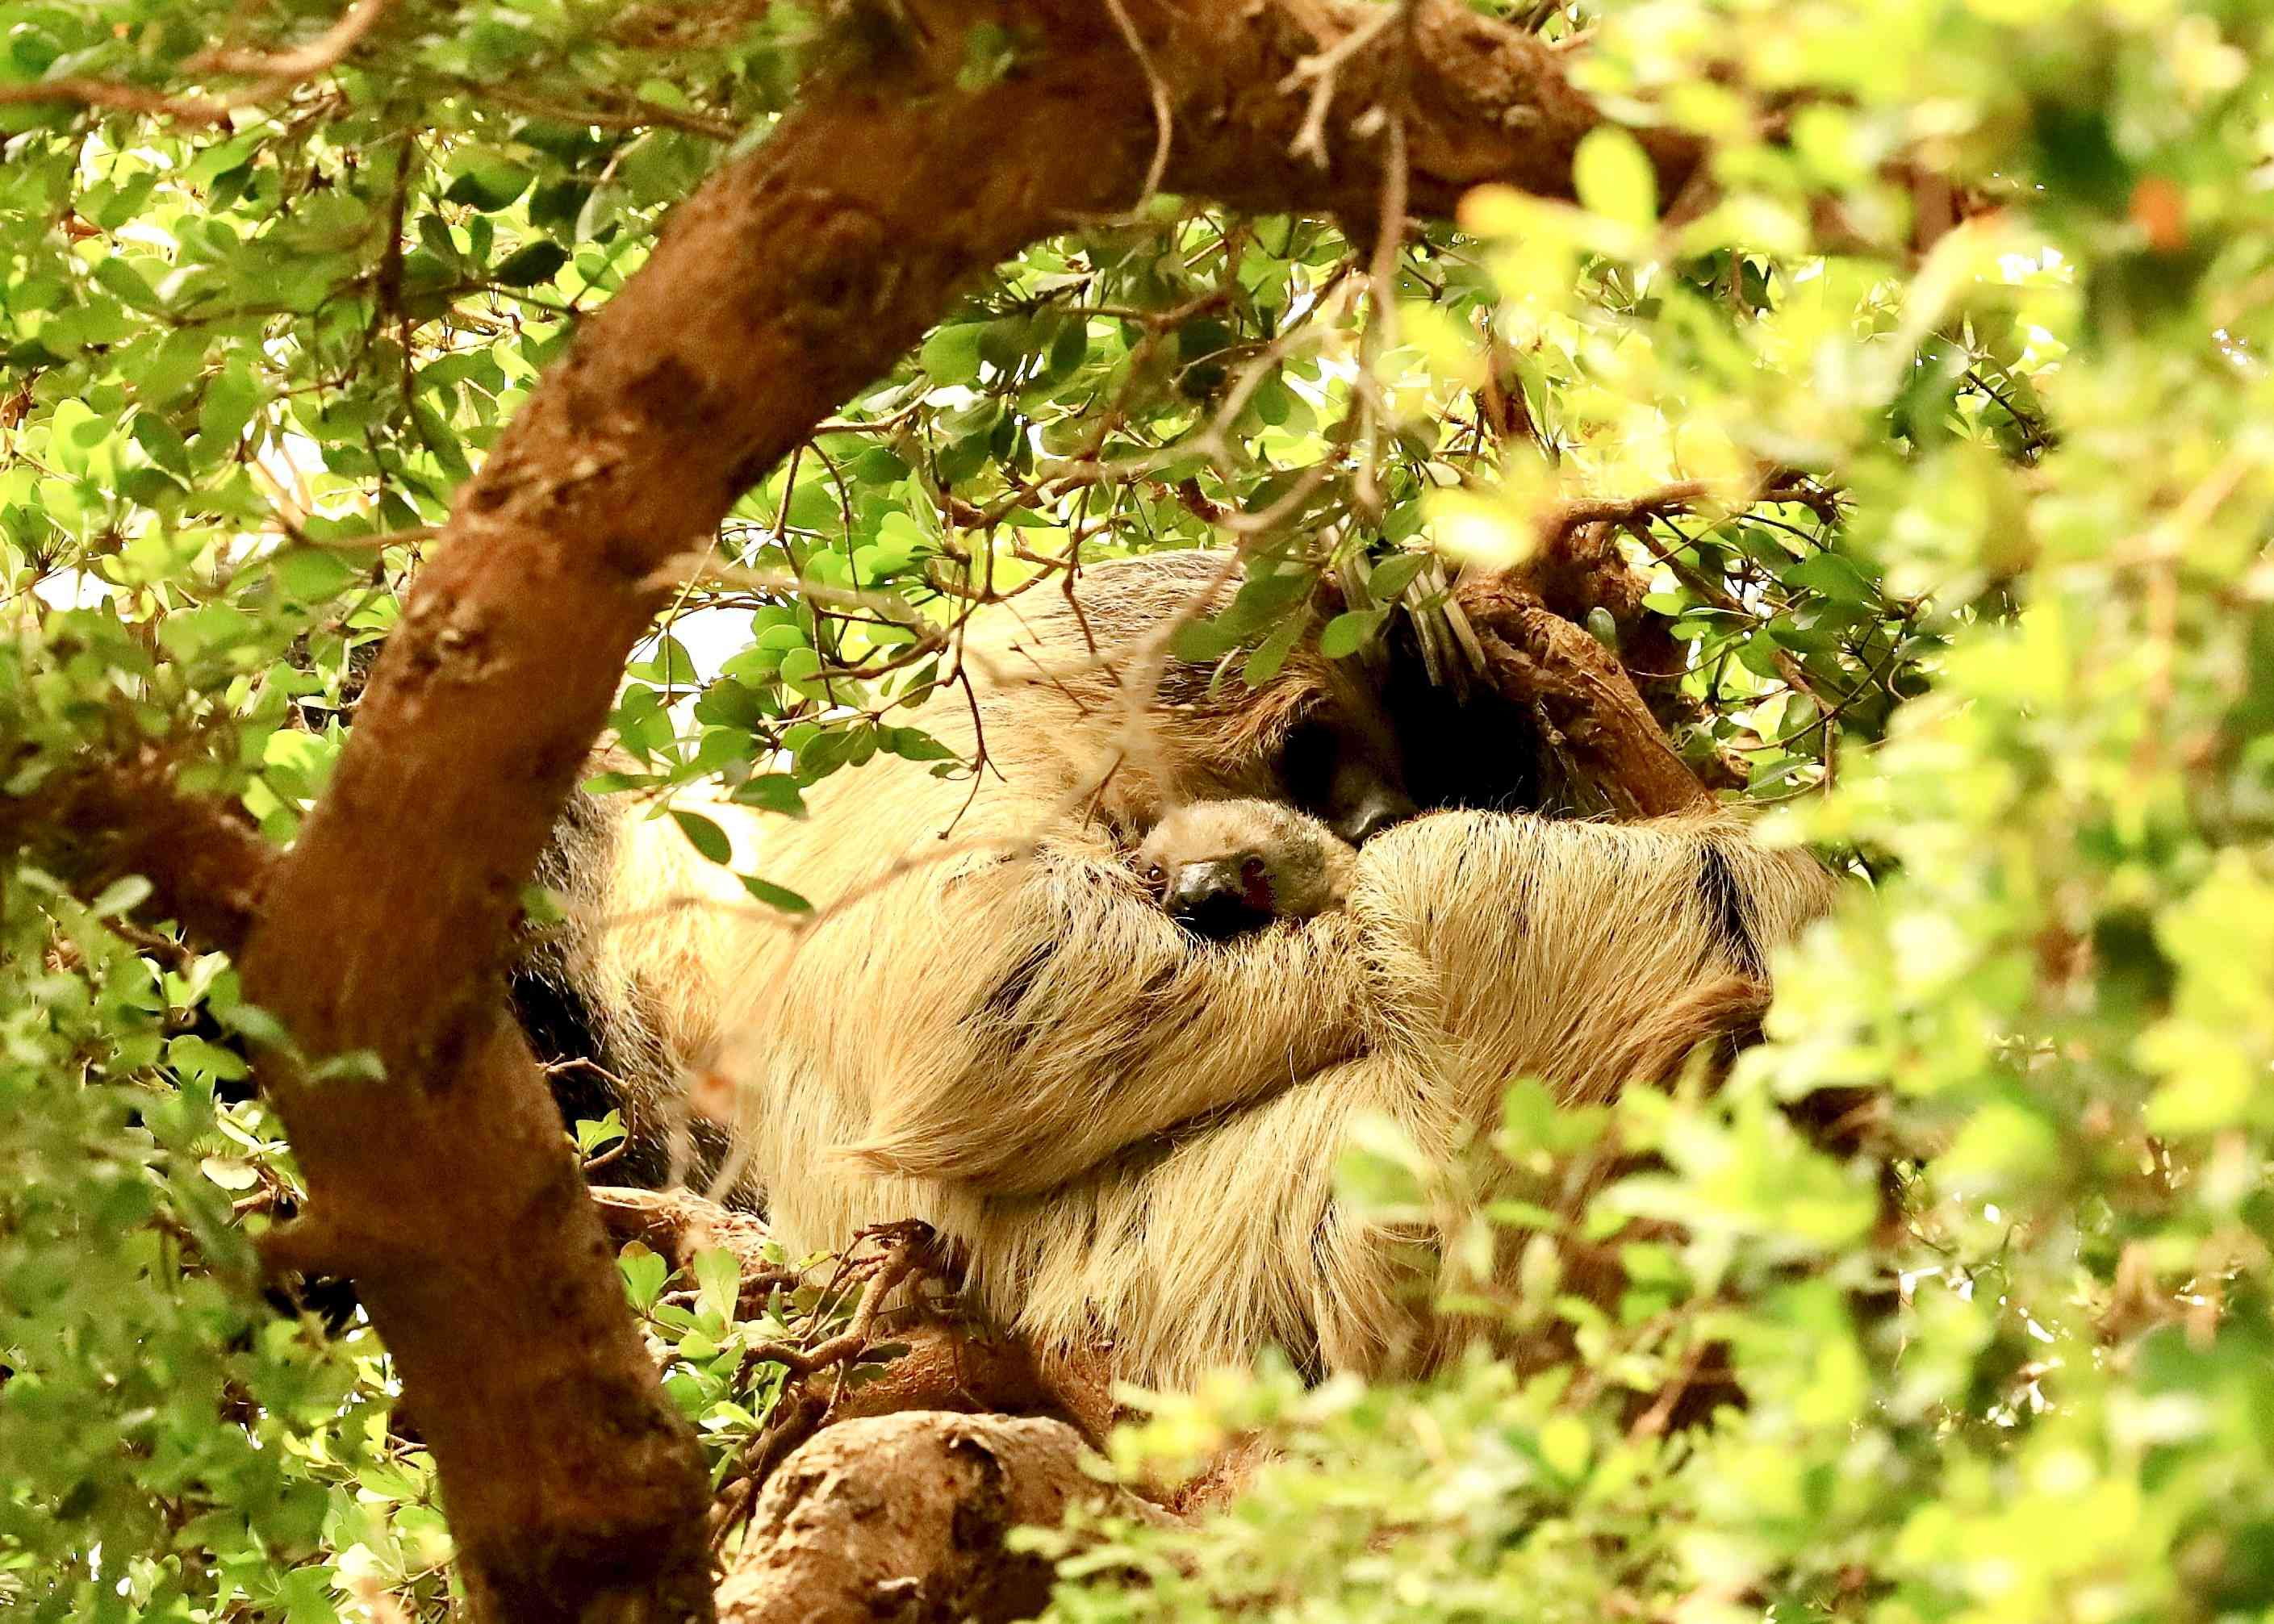 Truffle and Marilyn sloths in tree